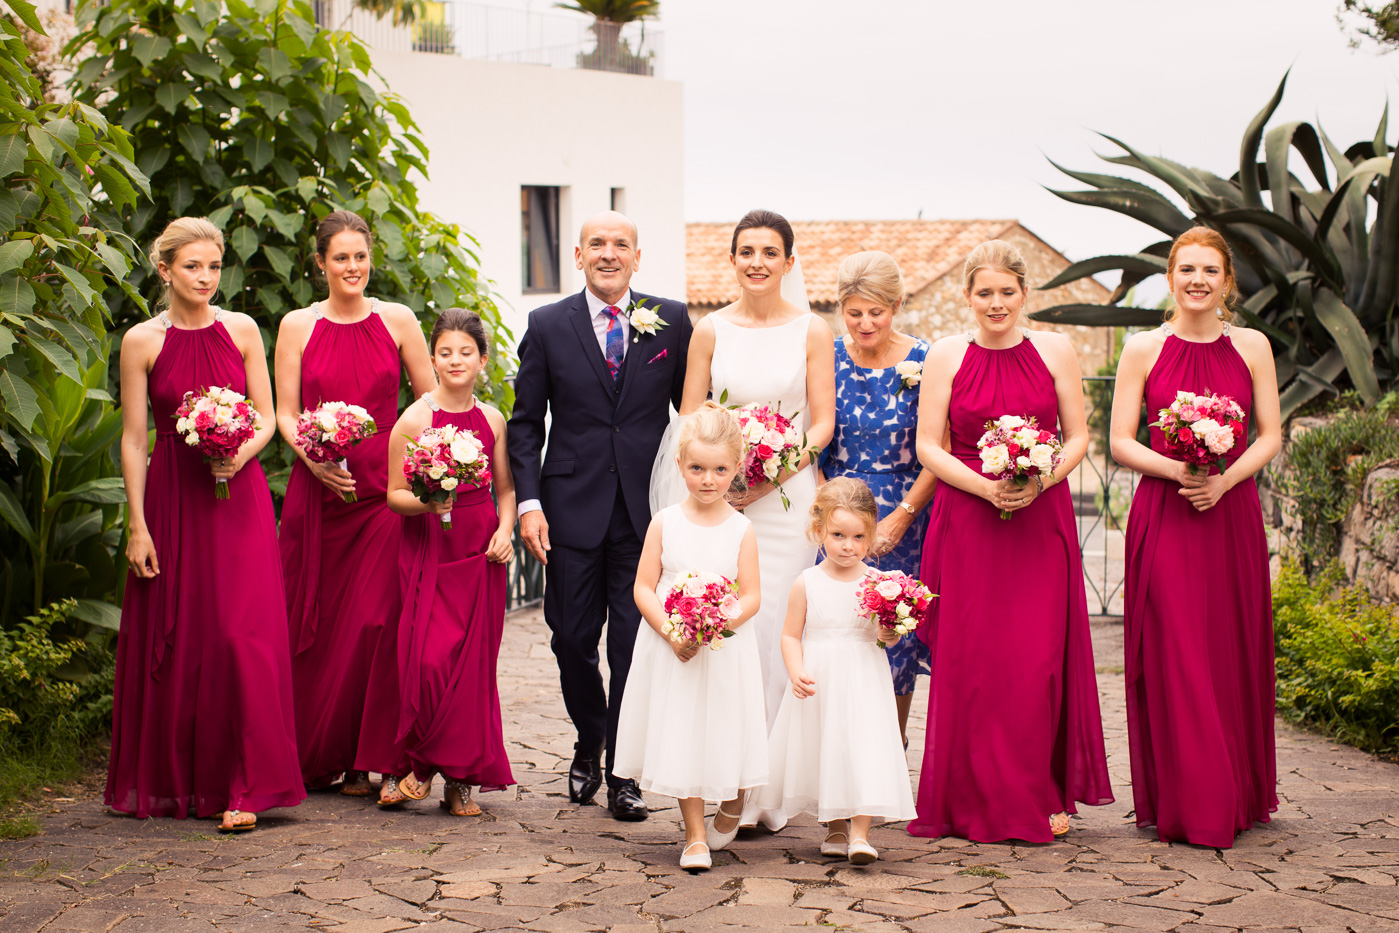 Lovely Wedding Taormina-bridal-party-bride-palazzp-duchi